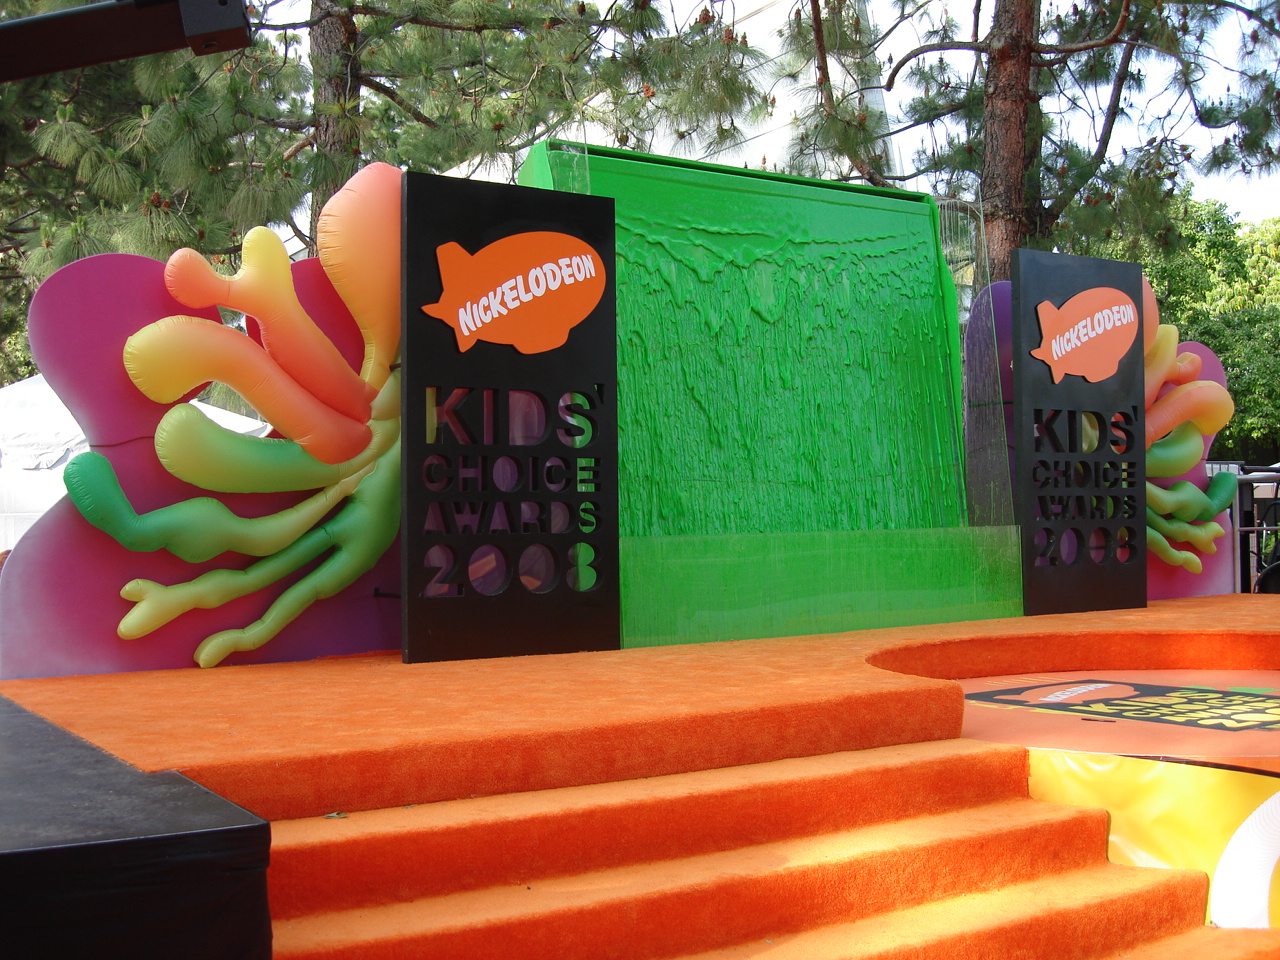 Kids Choice Awards 2008 Slime Wall